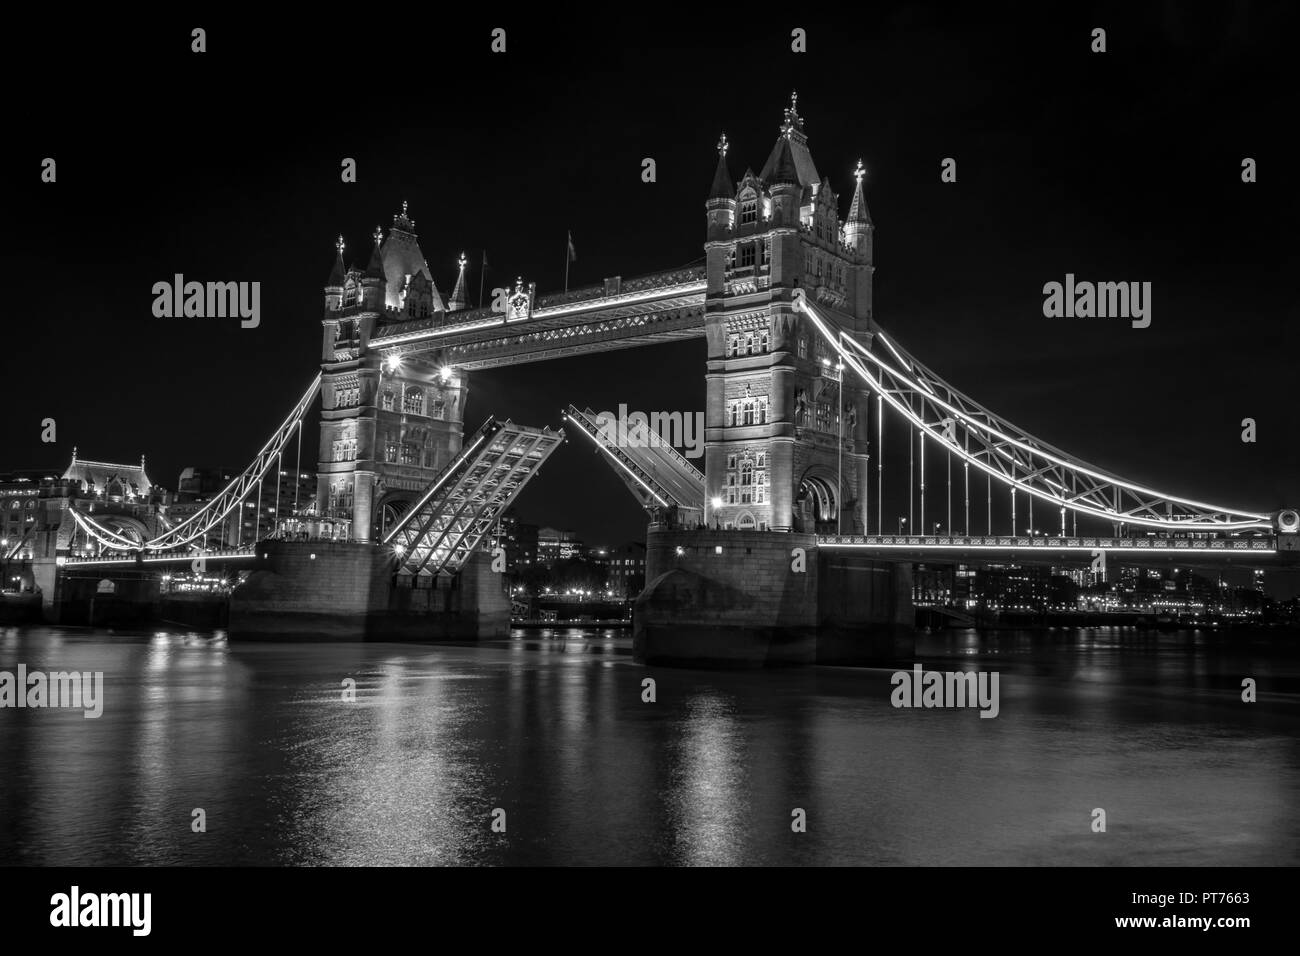 This is a black and white picture of Tower Bridge in London all light up at night - Stock Image